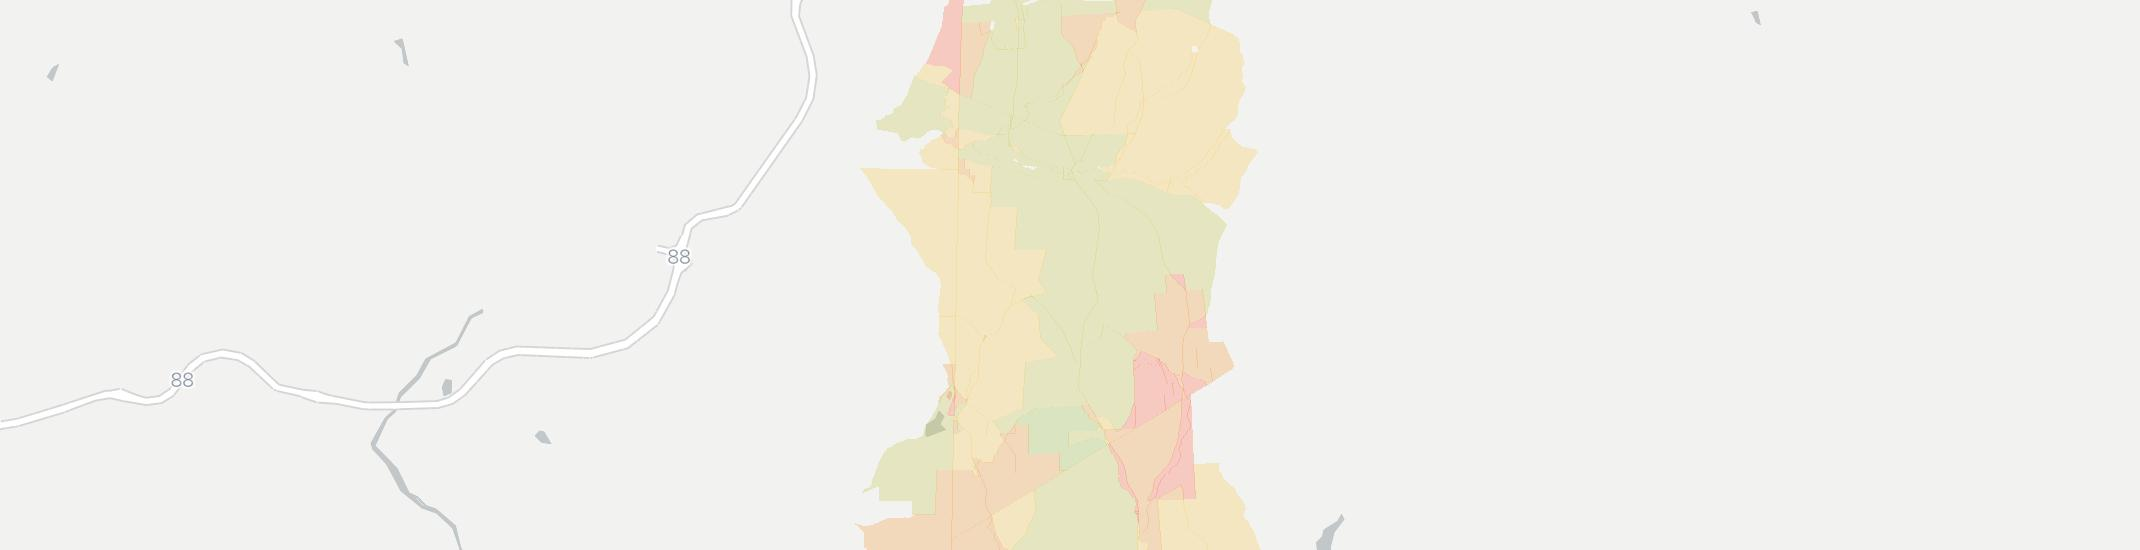 Masonville Internet Competition Map. Click for interactive map.